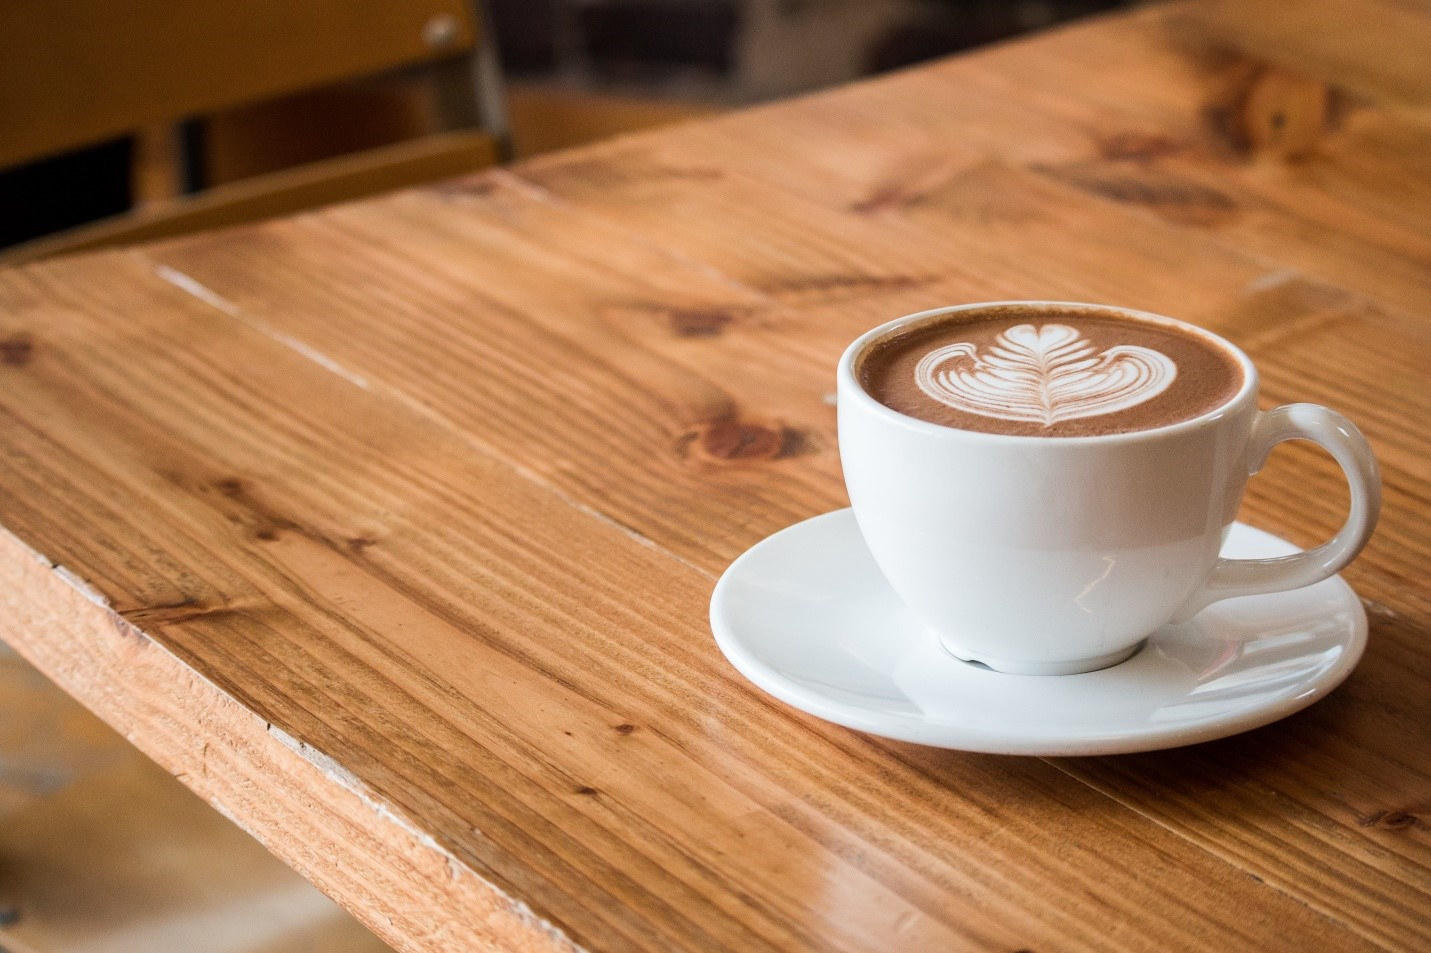 A cup of coffee on a wooden coffee table